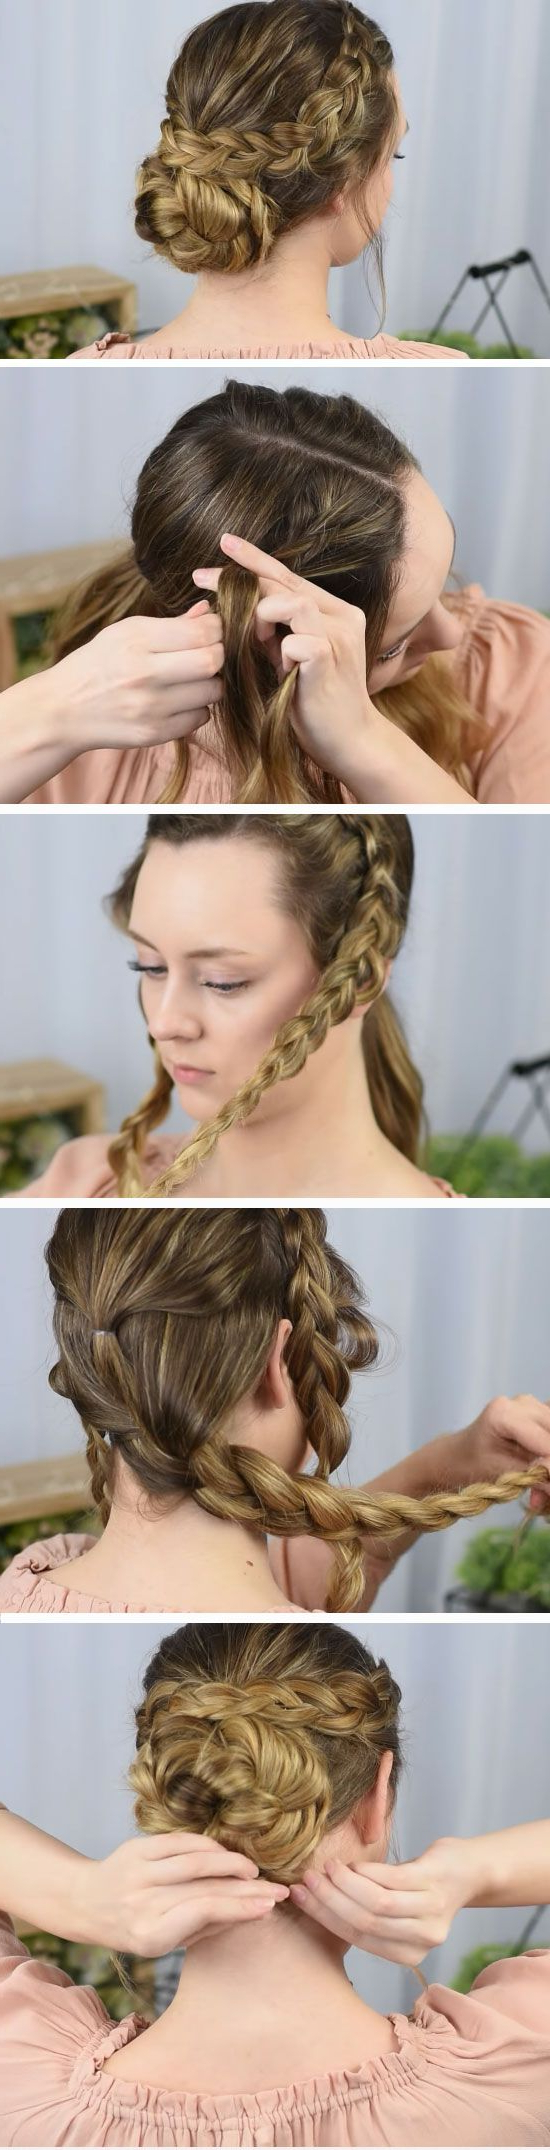 Latest Medium Hairstyles For Balls With 15 Easy Diy Prom Hairstyles For Medium Hair (View 8 of 20)